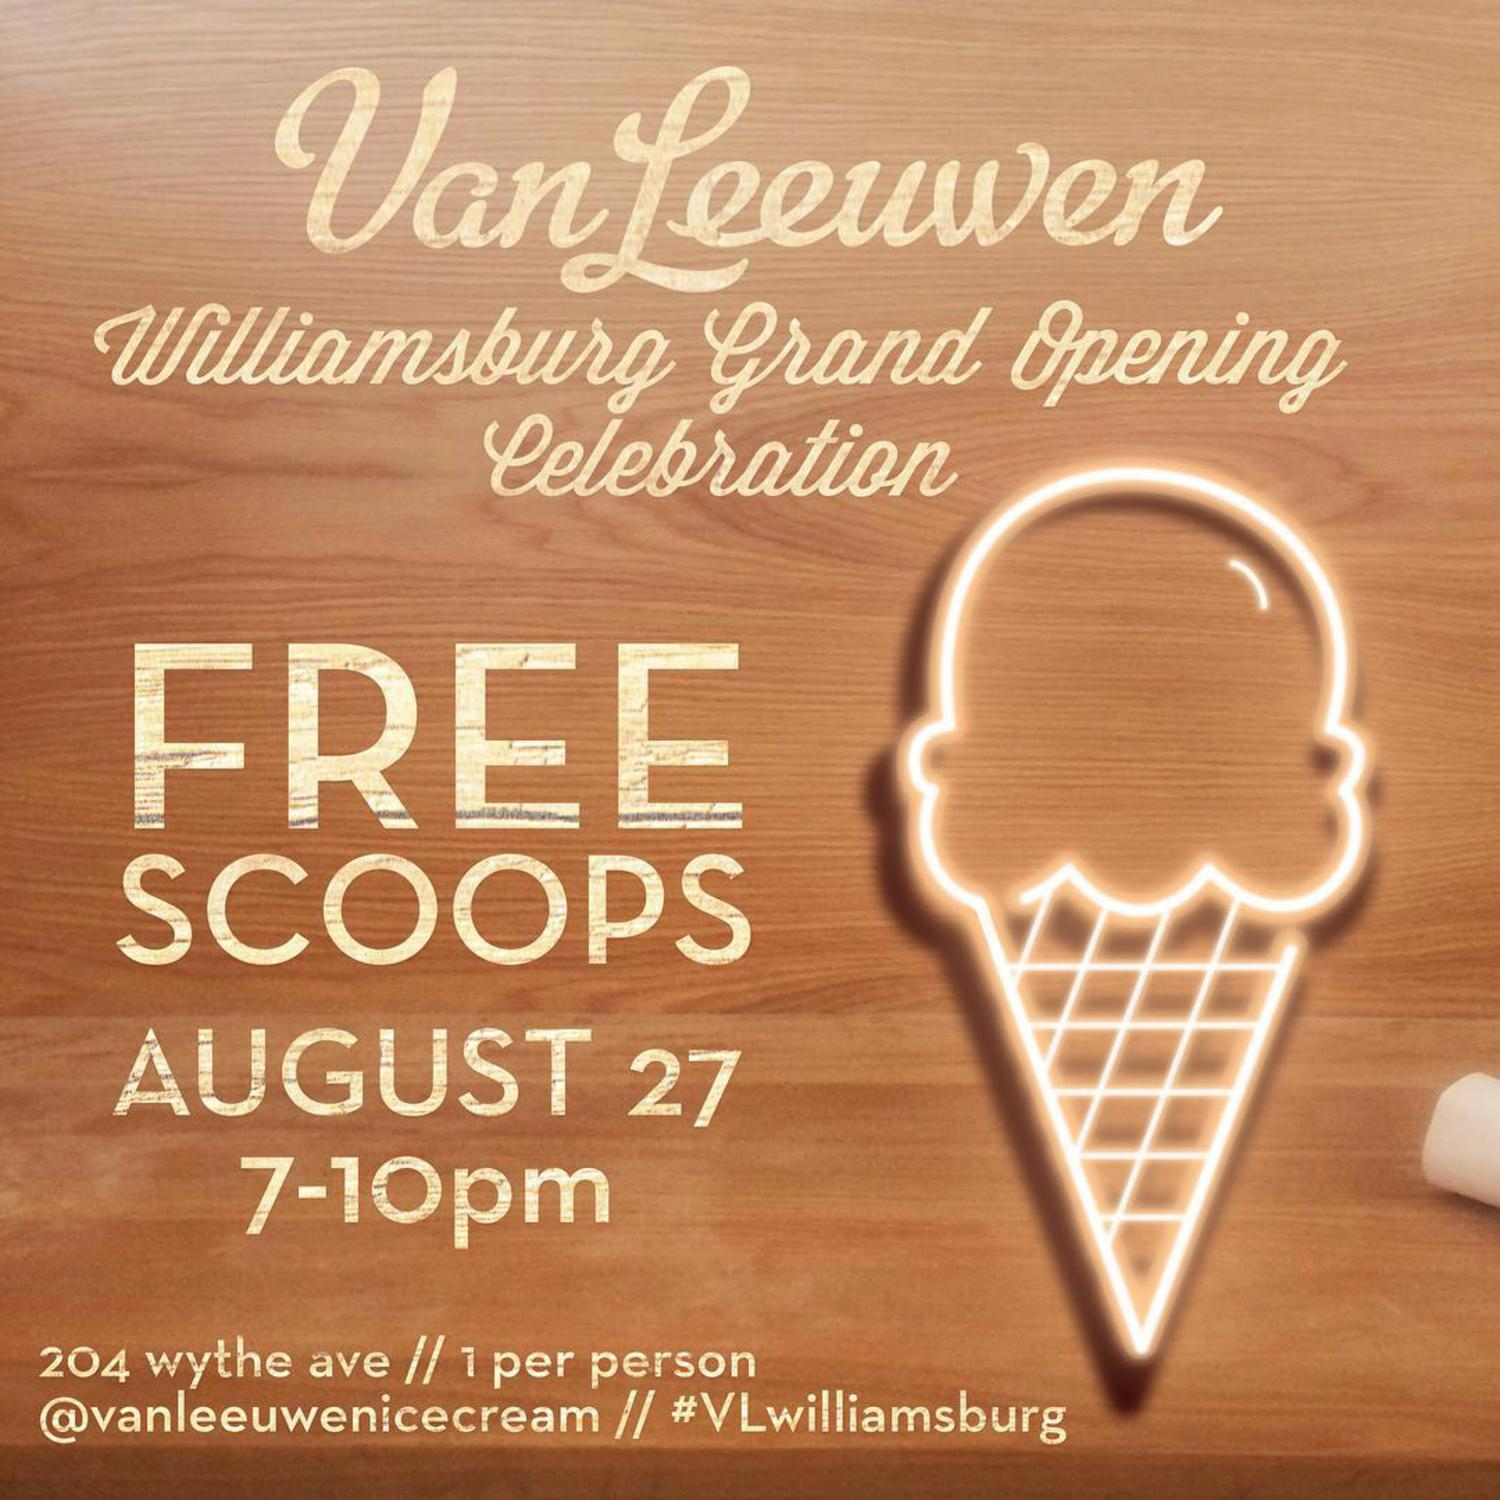 TONIGHT! 7-10pm GRAND OPENING WILLIAMSBURG!! #vlwilliamsburg #freescoops #vanleeuwen #icecream #icecream